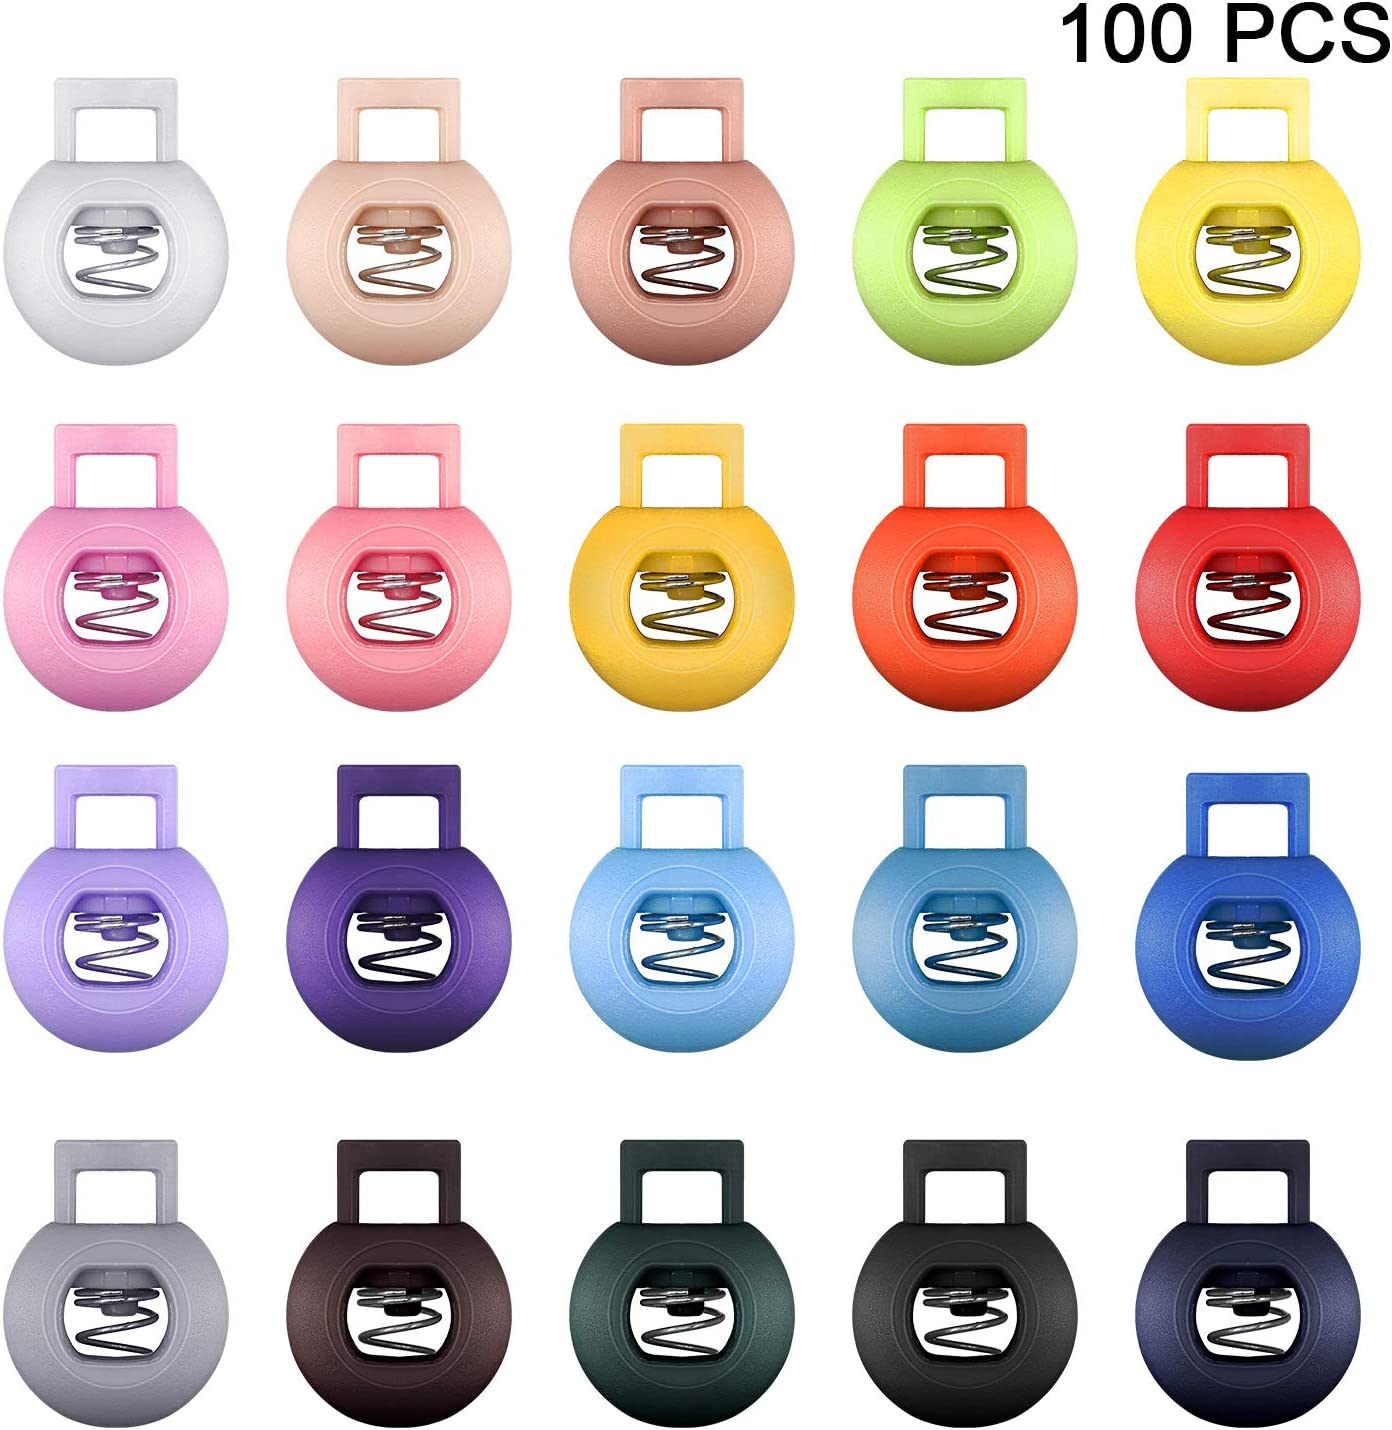 100 Pieces Colors Plastic Cord Locks Round Spring Toggle Stopper Ends Single Hole Sliding Fastener Buttons Elastic Drawstring Rope Cord Locks Backpack Luggage Lanyard Stopper